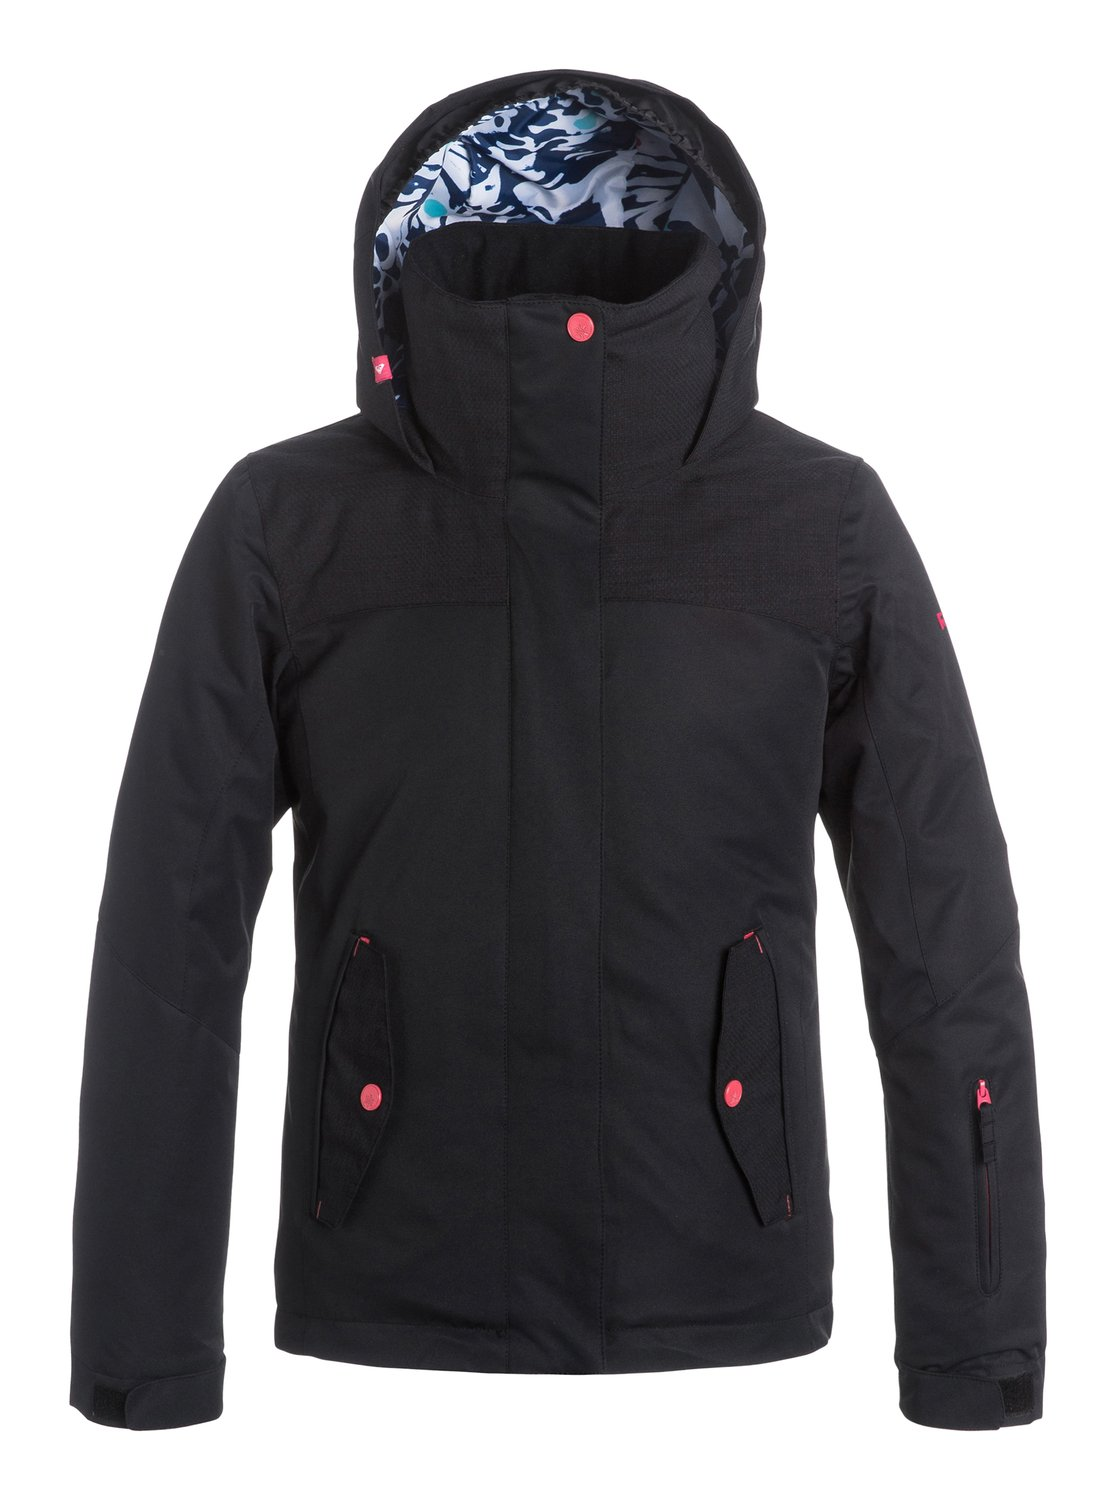 Сноубордическая детская куртка ROXY Jetty SolidThe ROXY Jetty Solid snowboard jacket for girls has been crafted with 10K ROXY DryFlight® technology for reliable waterproof and breathable protection in a wide range of winter conditions. An easy-to-wear regular fit allows space to layer and is complemented by mixed fabric on lower body and sleeves, Warmflight® insulation level 3 to keep you cosy on the coldest winter days and a breathable taffeta lining with soft tricot panels.<br>